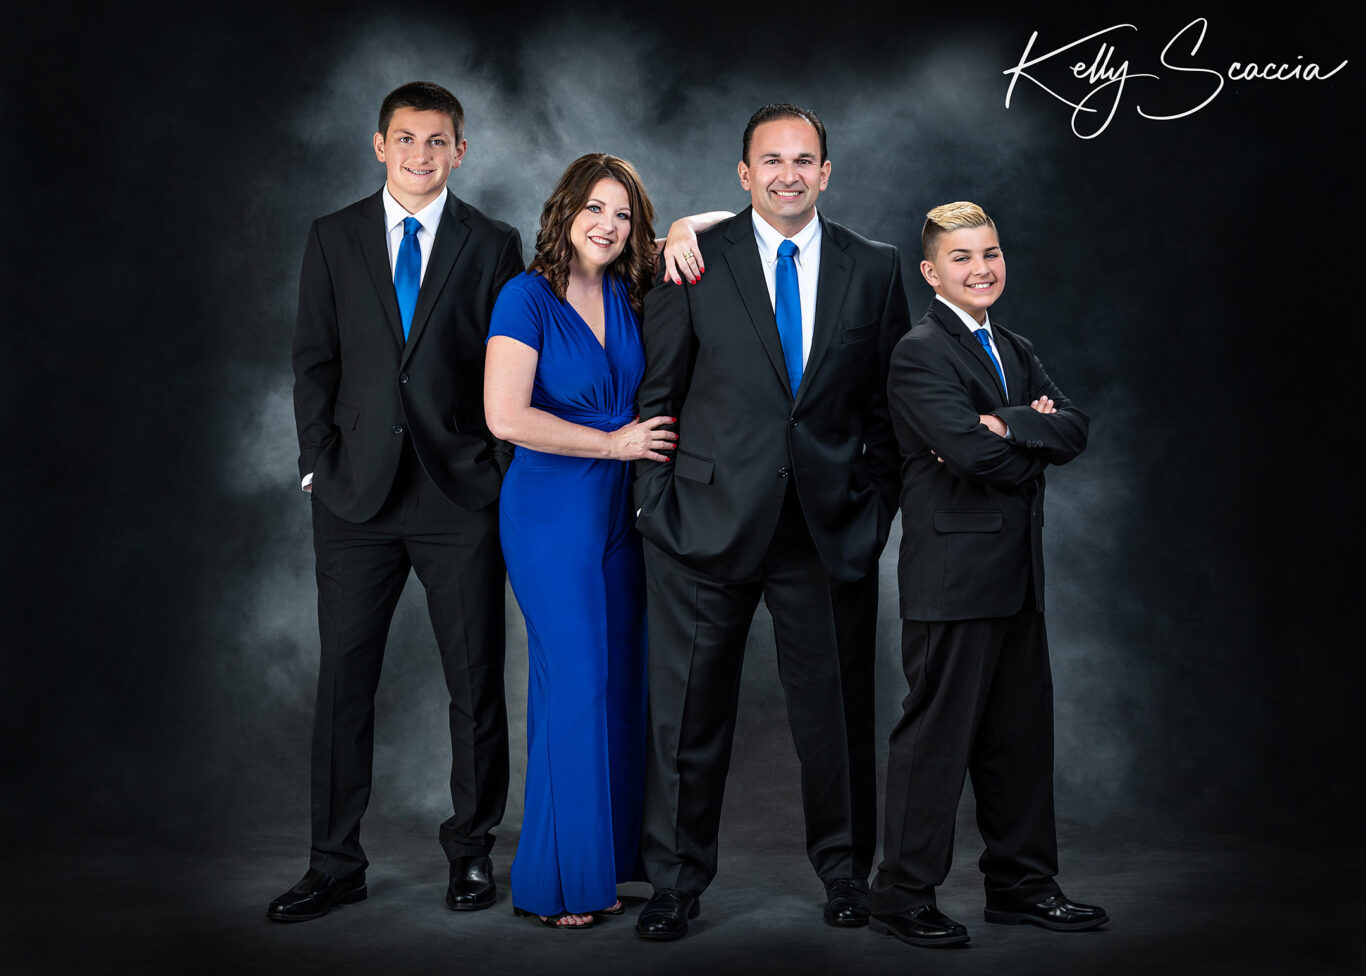 Formal studio portrait of wife in royal blue dress, husband in dark suit, blue tie, two teenage sons wearing matching suits with dad, all looking at you, smiling